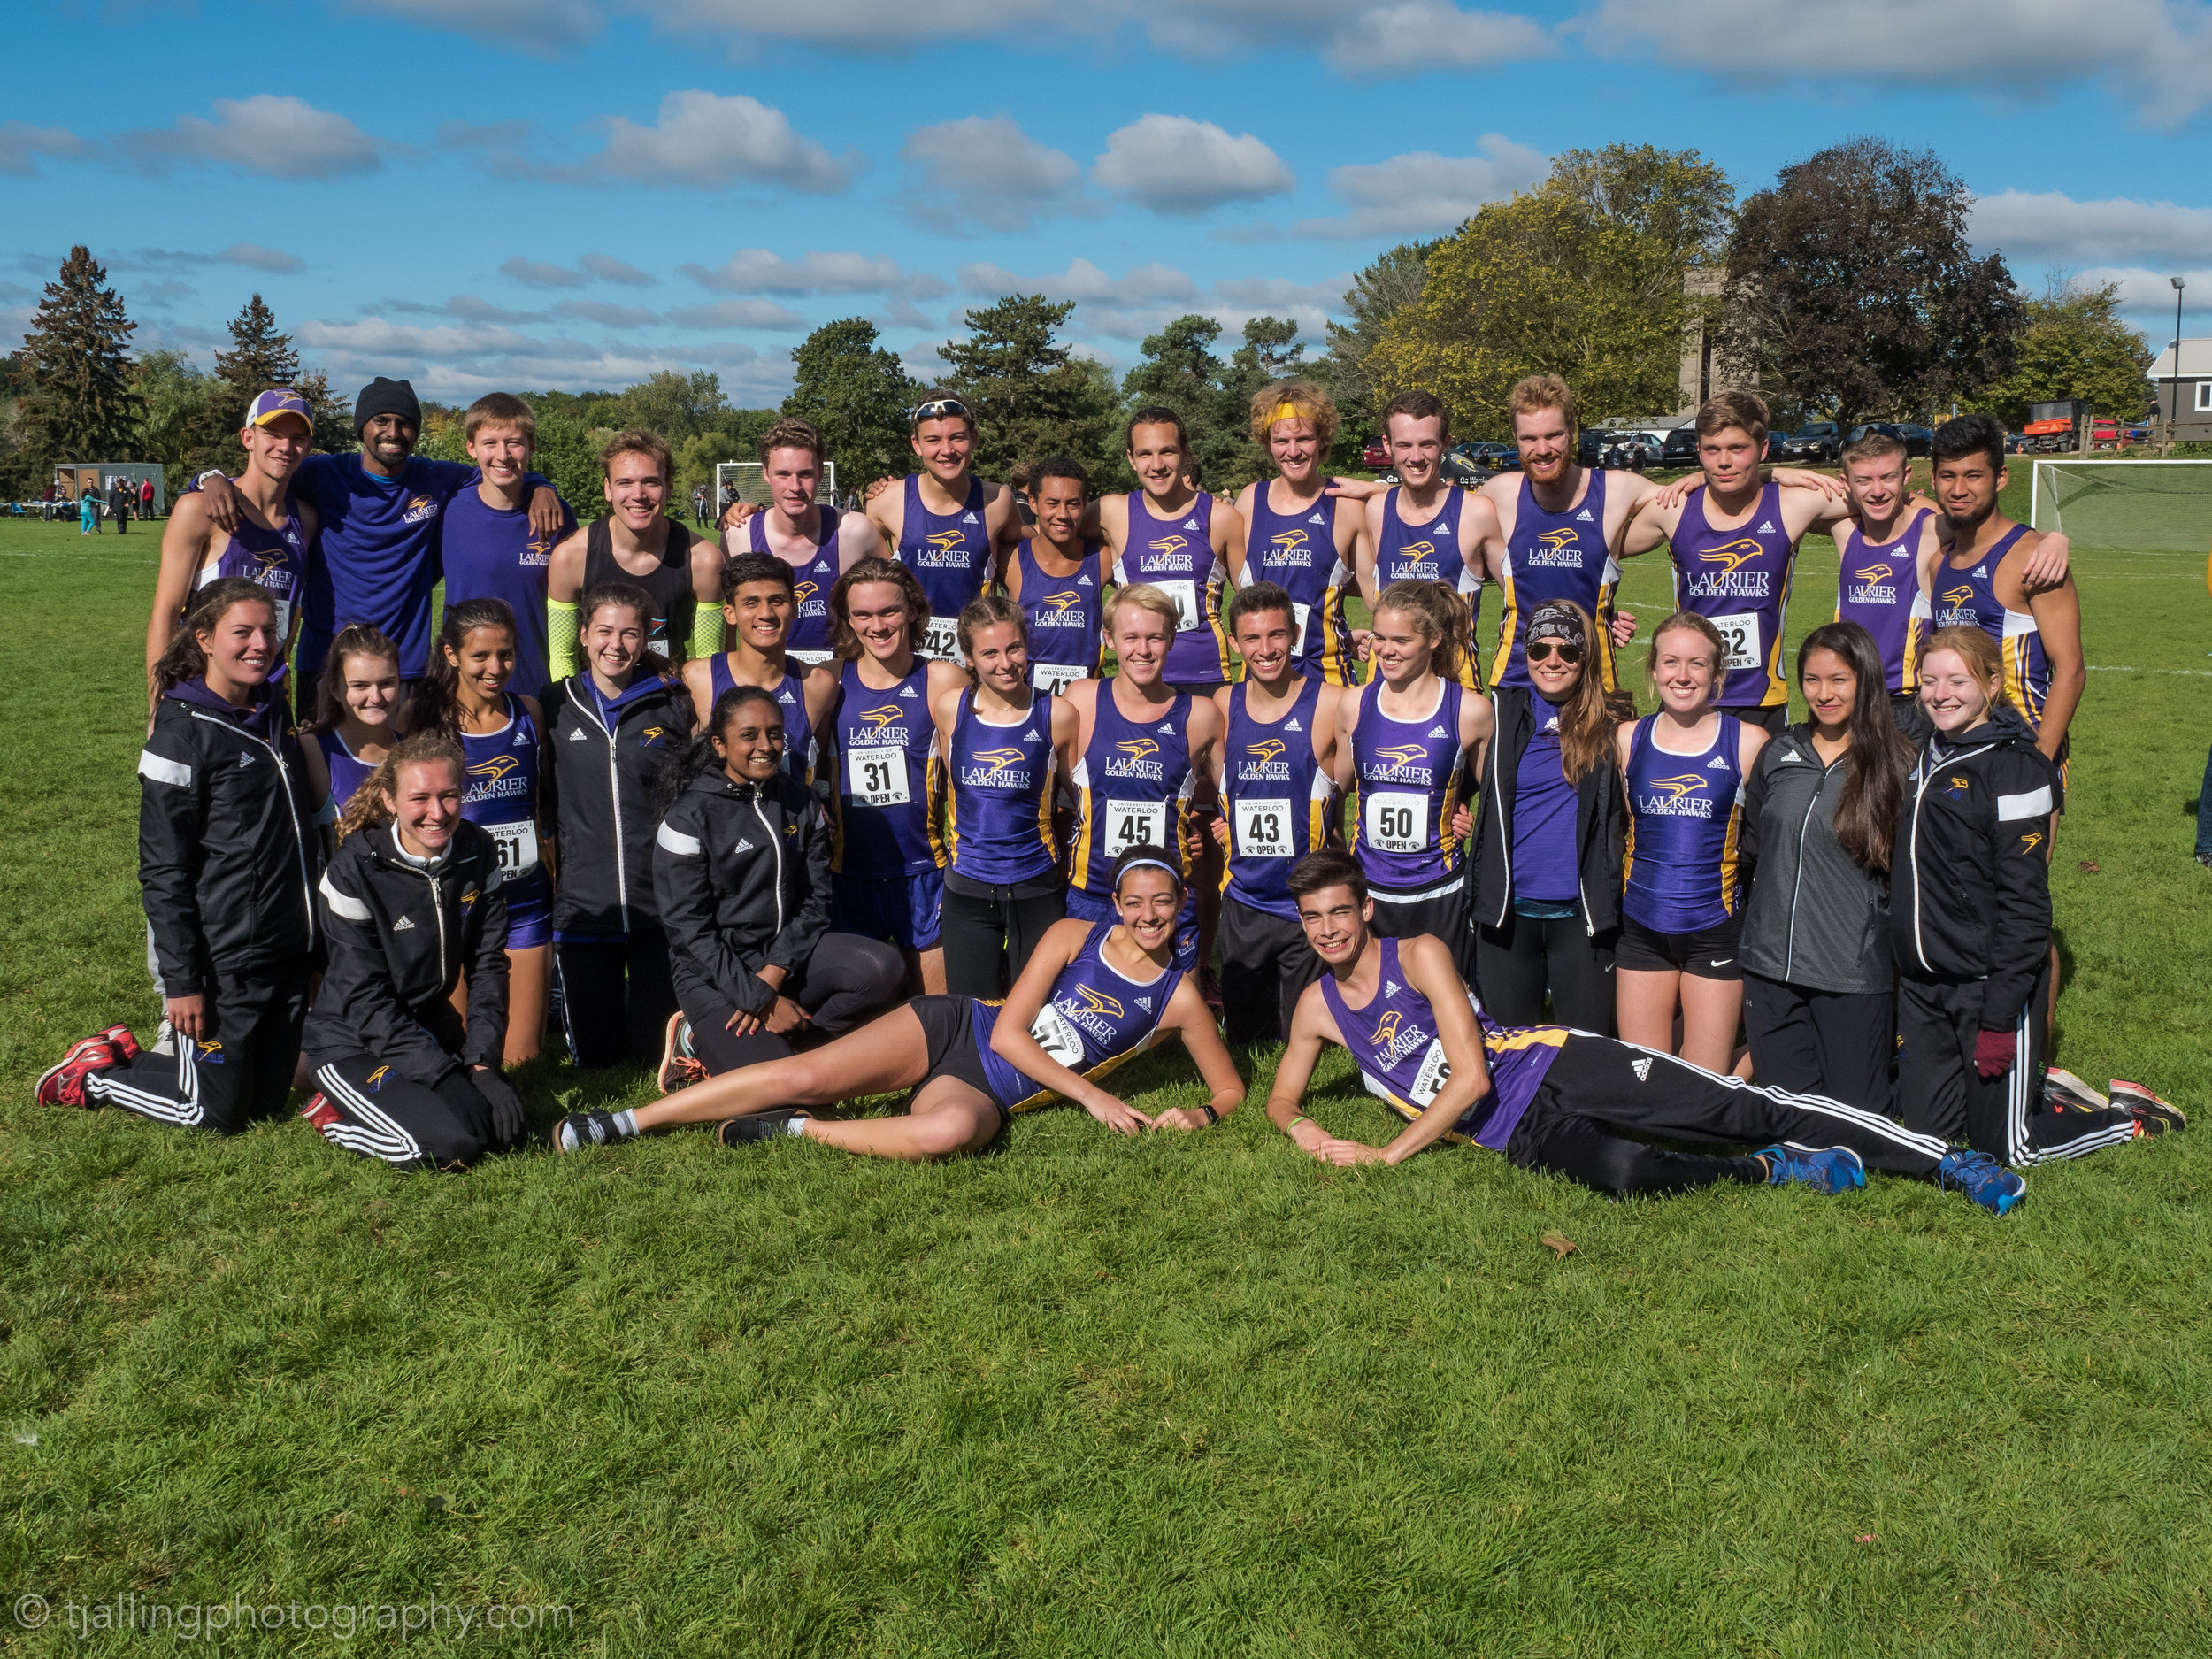 The track and field team of Laurier.